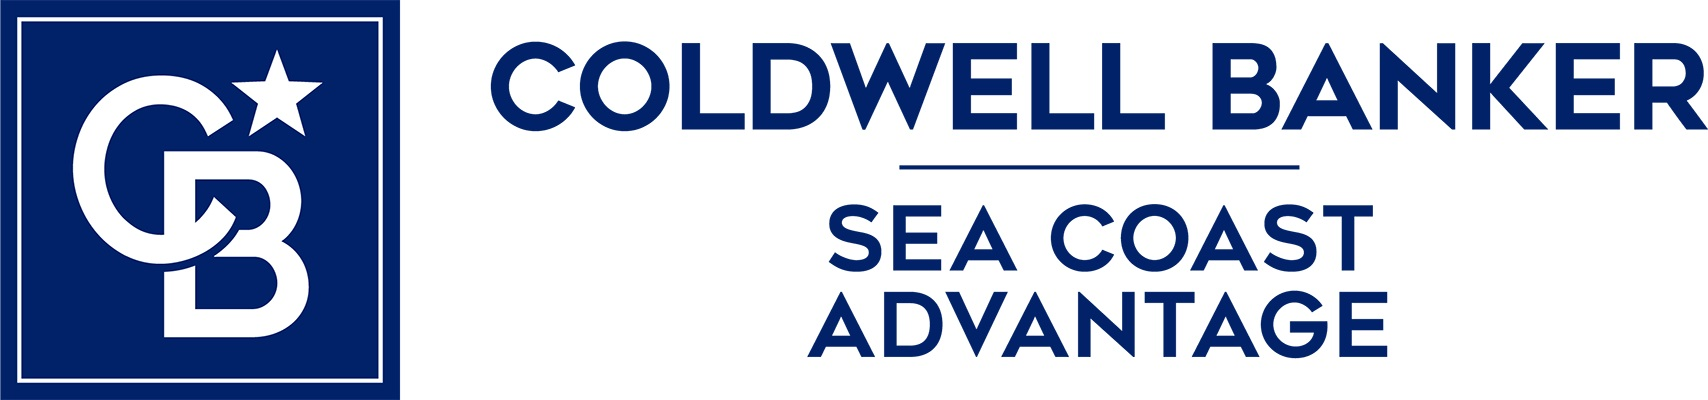 Amy Helm - Coldwell Banker Sea Coast Advantage Realty